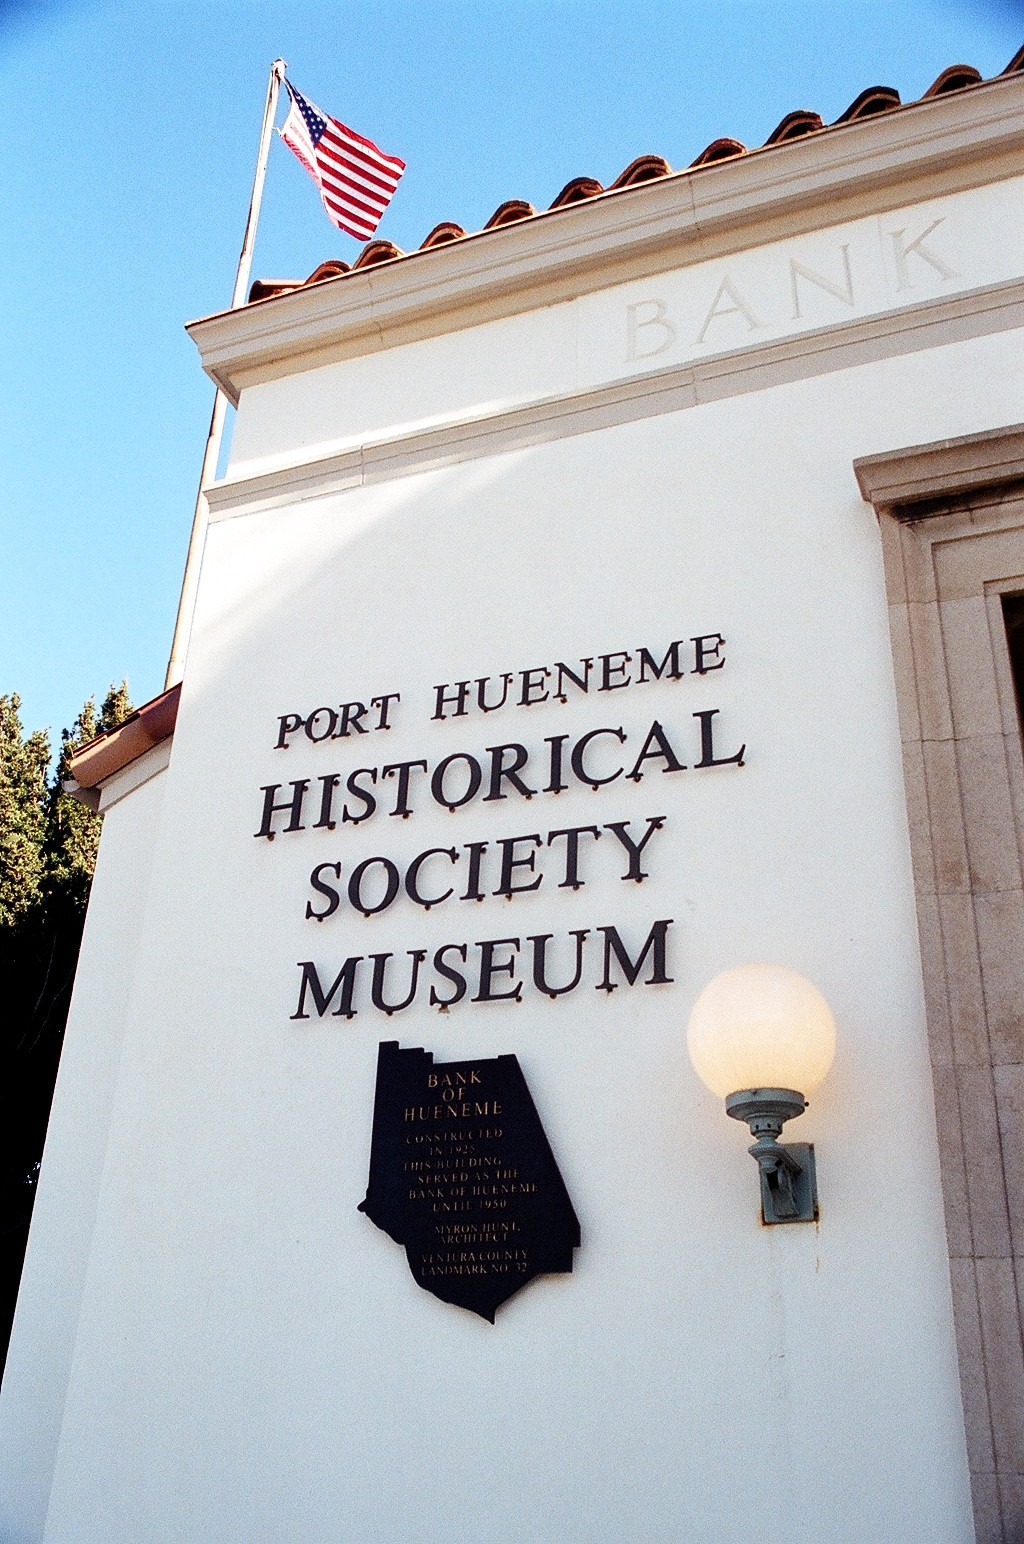 Port Hueneme Historical Society Museum